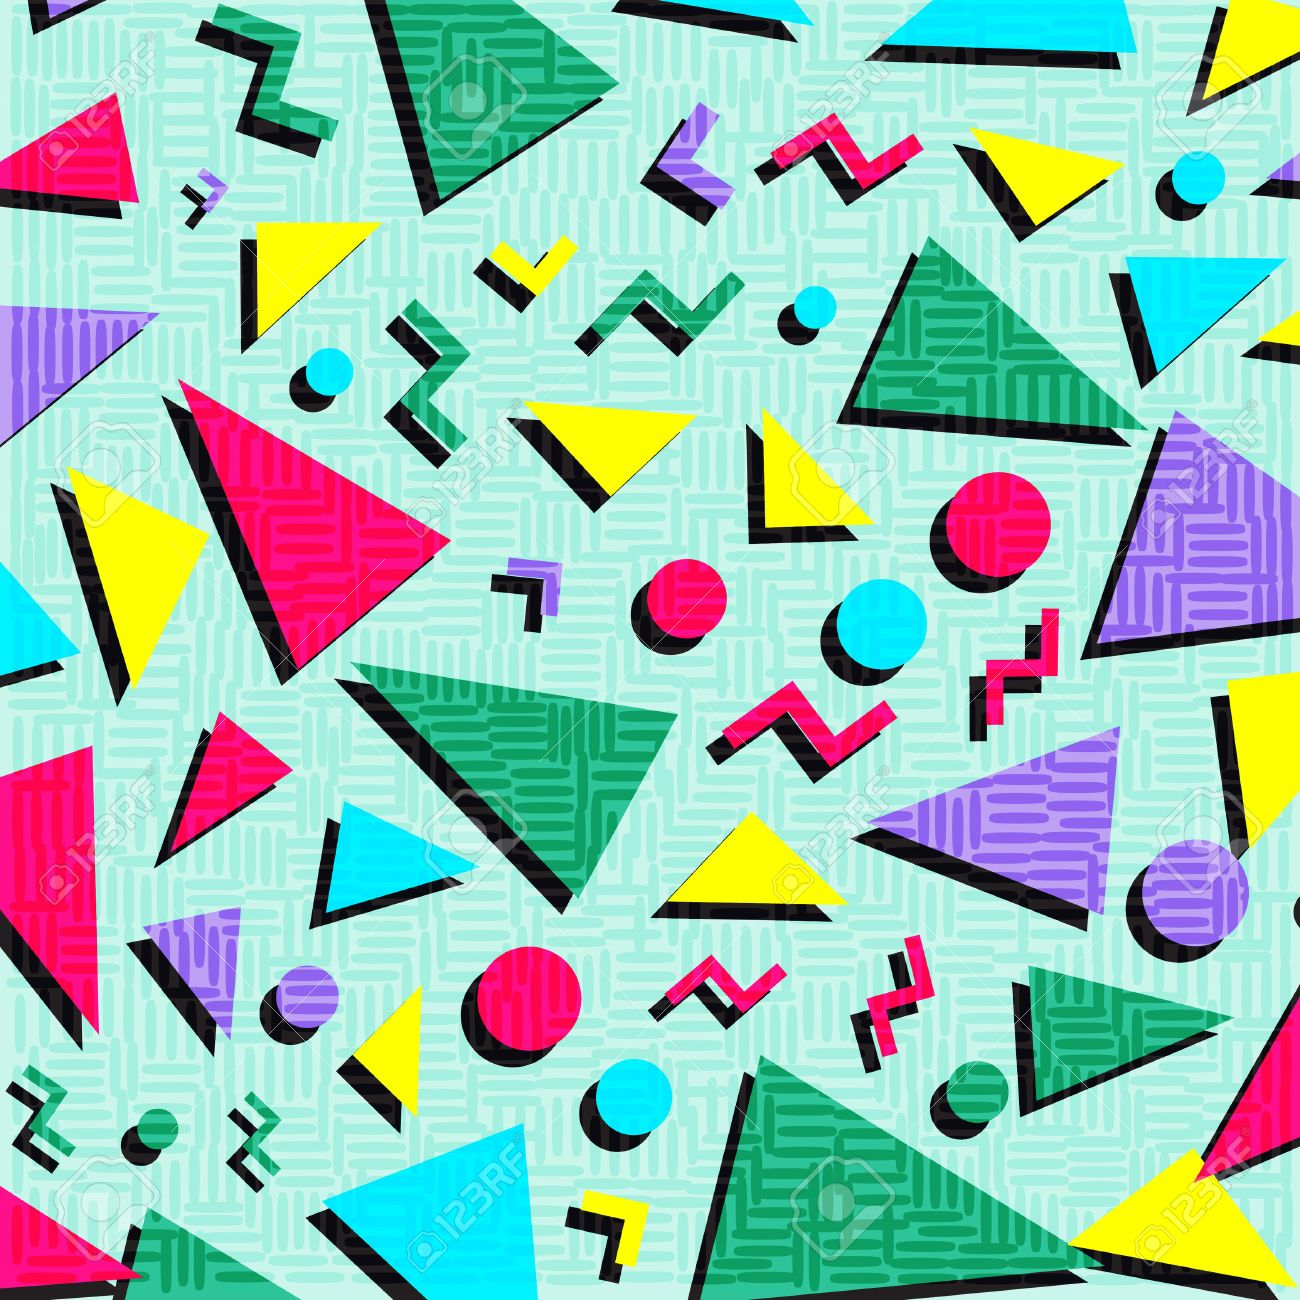 Retro vintage 80s or 90s fashion style abstract pattern background. Good for textile fabric design, wrapping paper and website wallpapers. Vector illustration. - 63744687